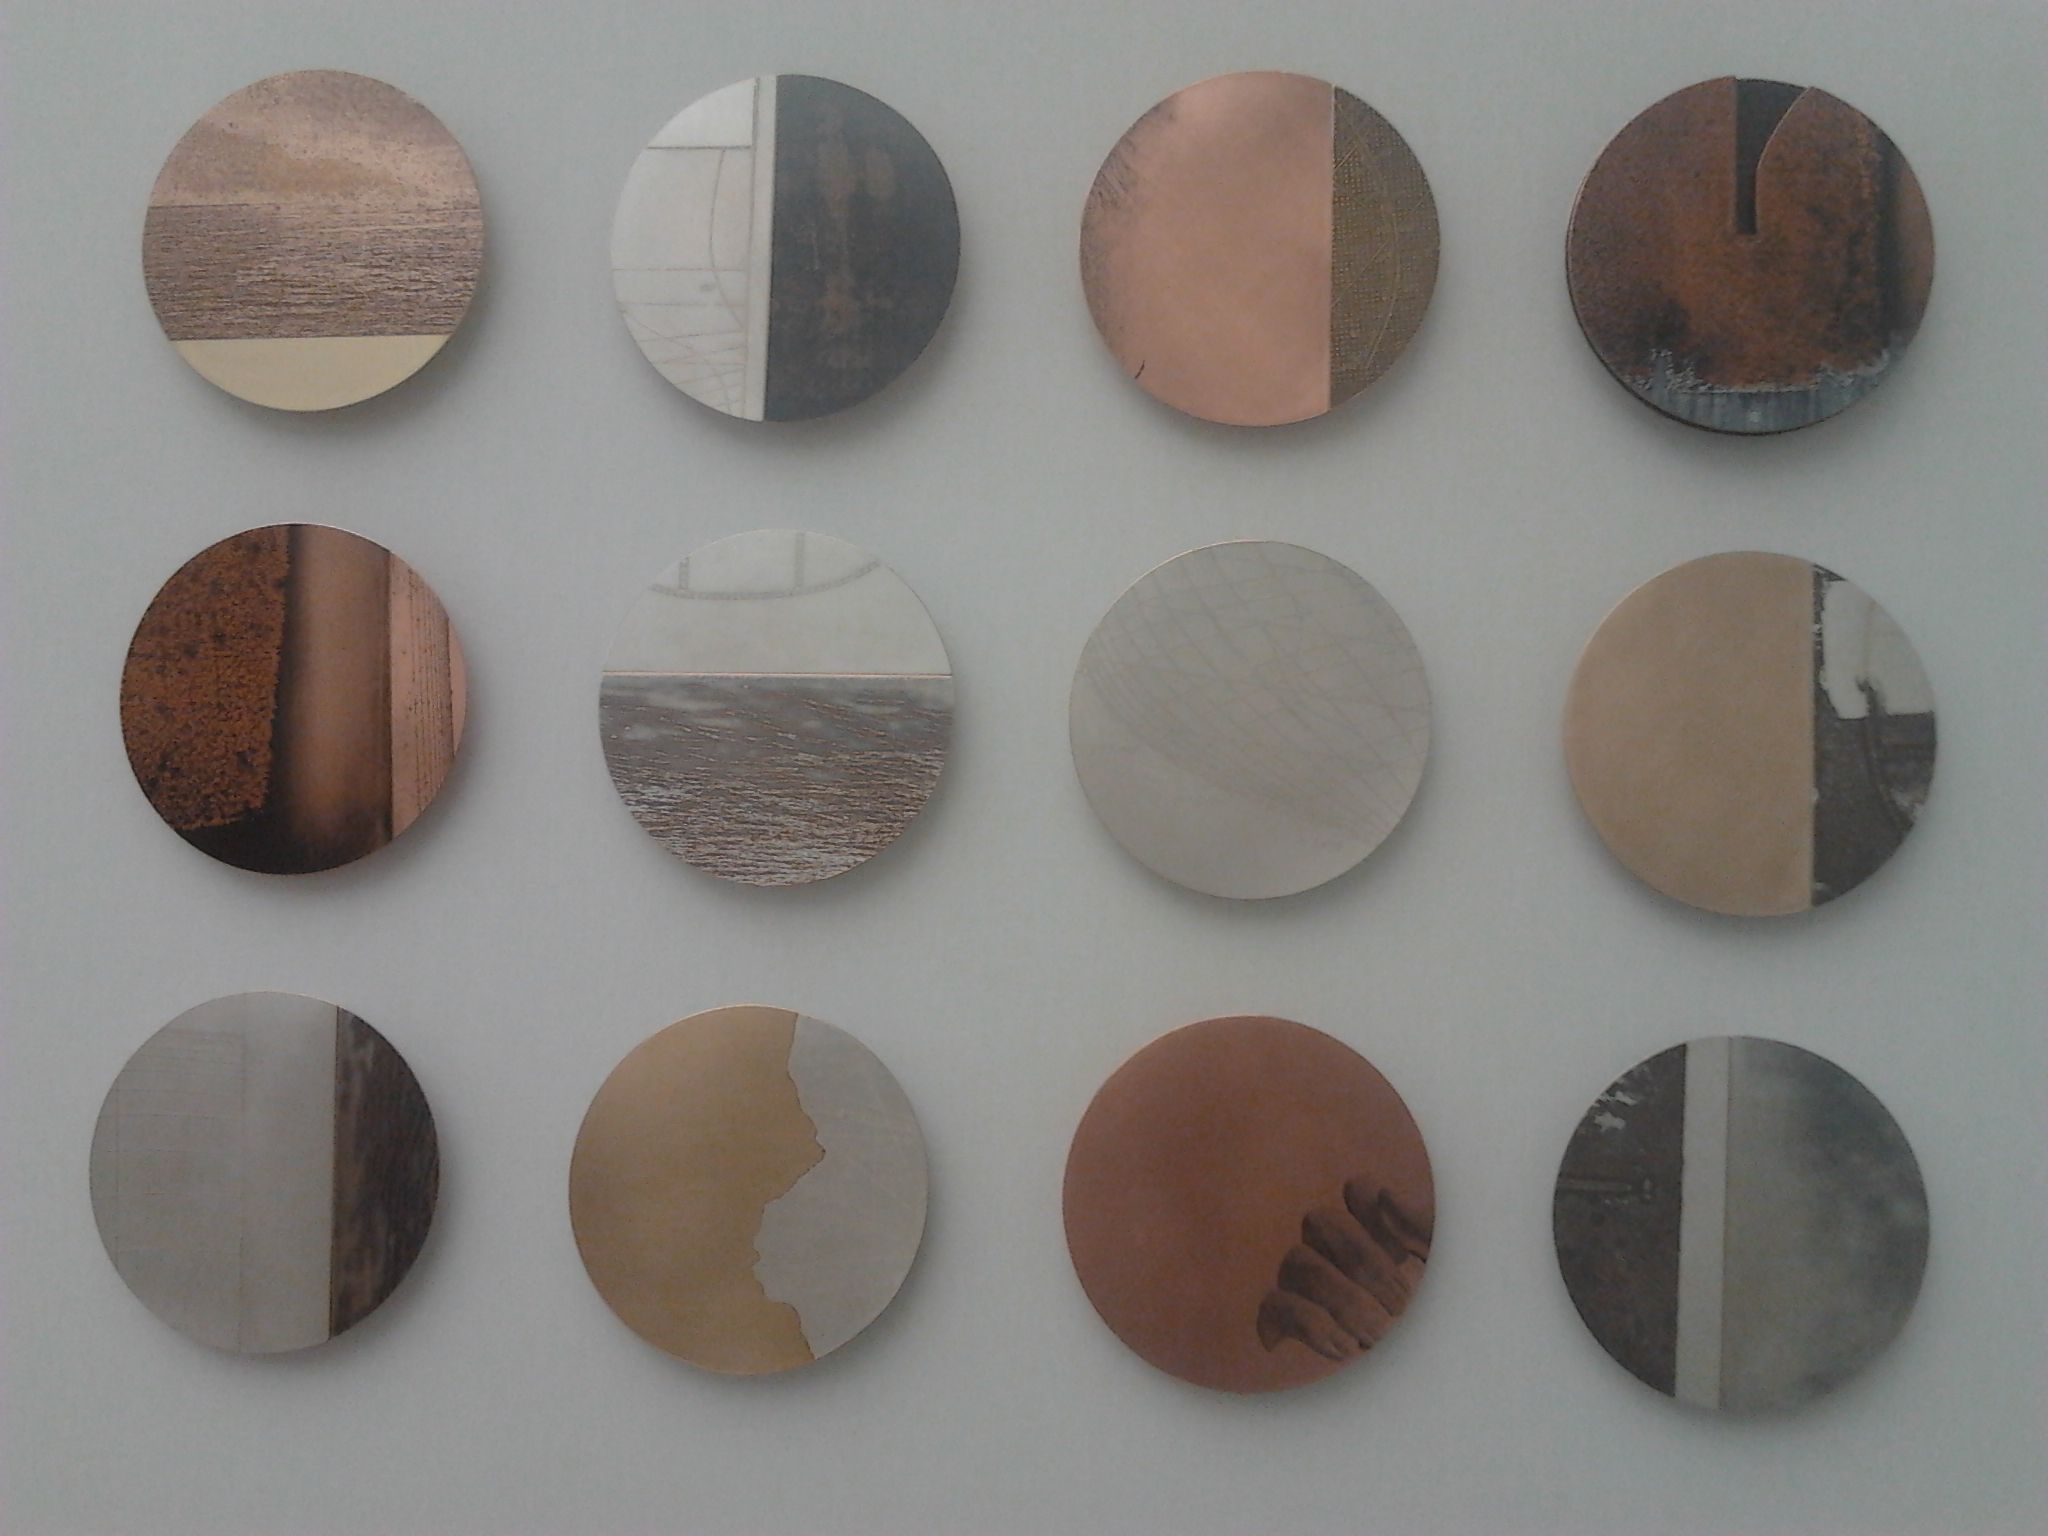 Coloured Plates - At Collect 2012